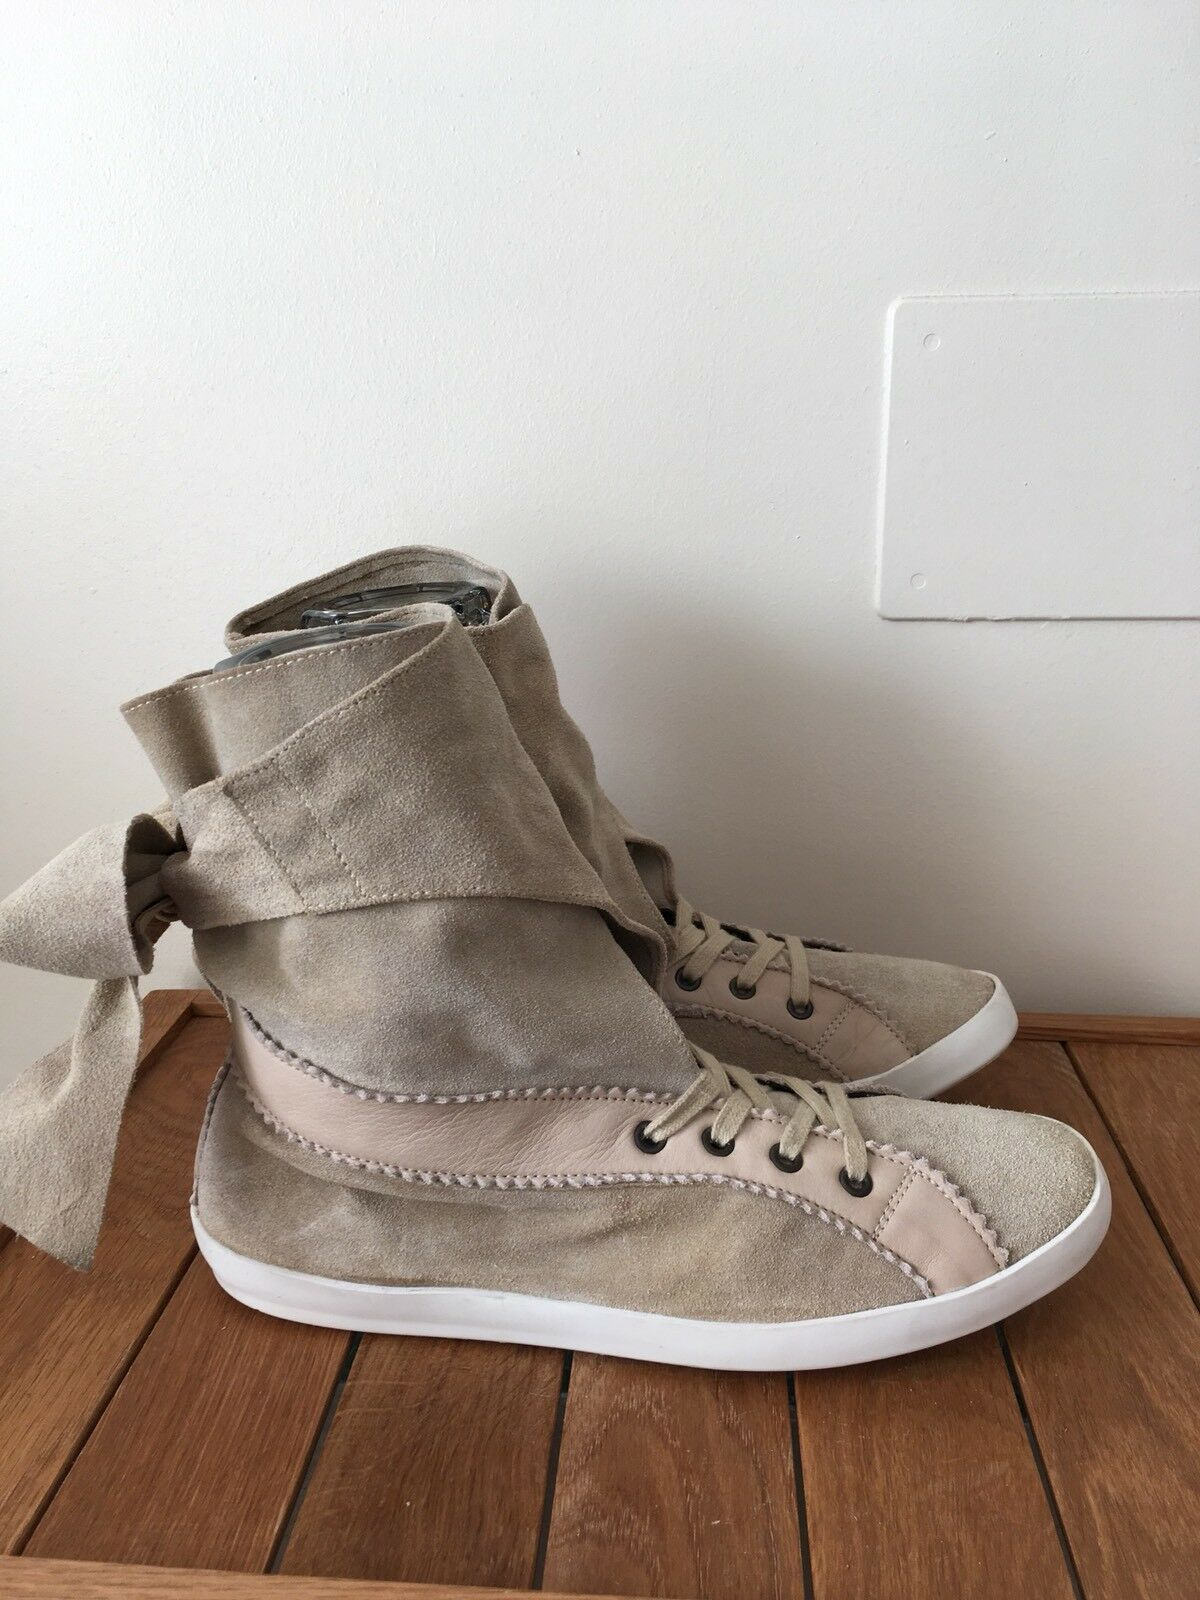 Manoush High Top Suede Trainers Beige Cream Bow Decoration 41 / UK 8